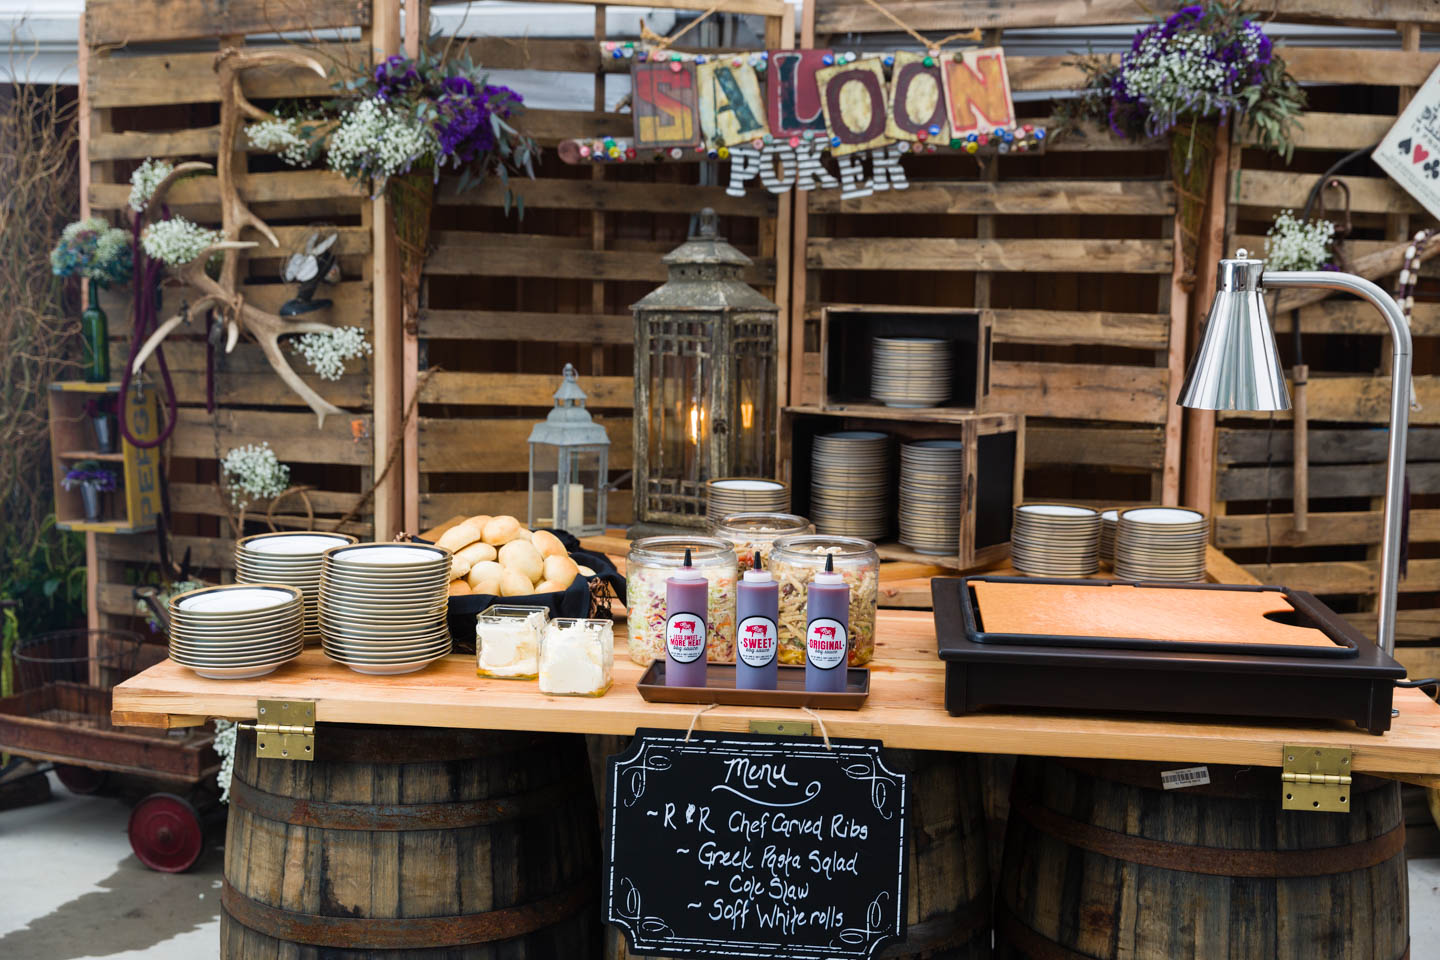 Saloon themed serving station at steampunk wedding